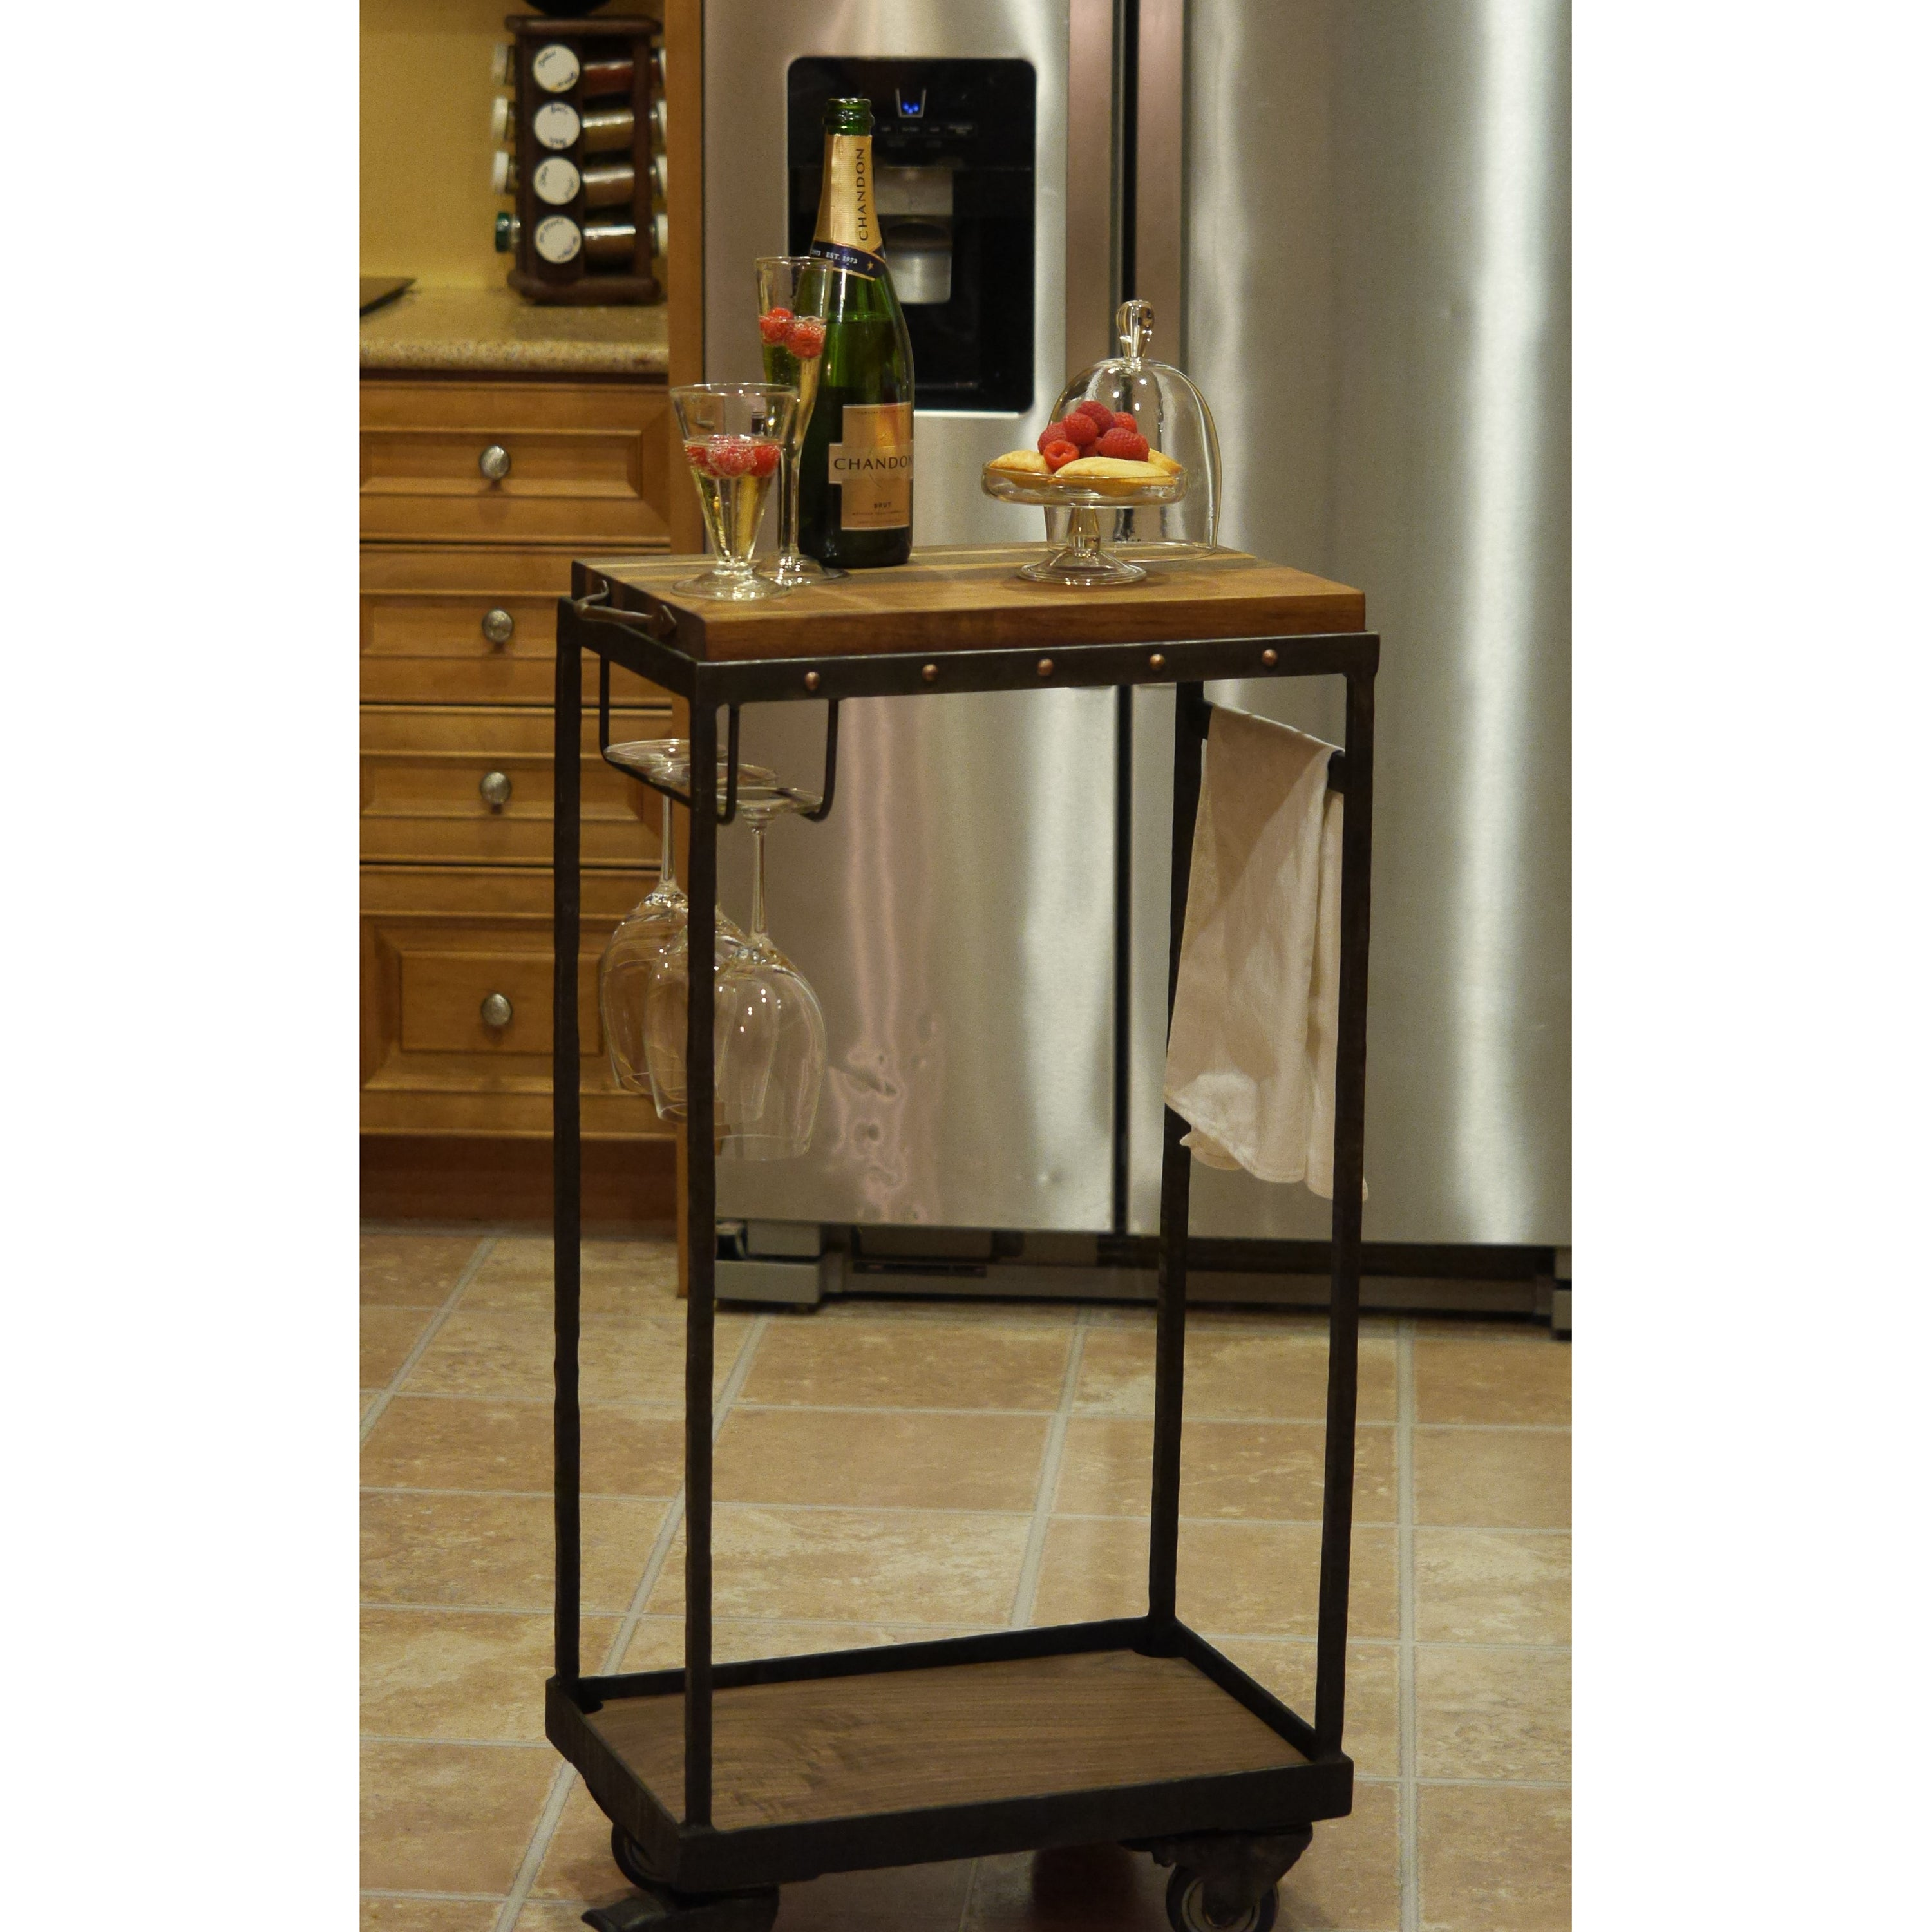 Handmade Artistic Rustic Bar Cart Coffee Furniture